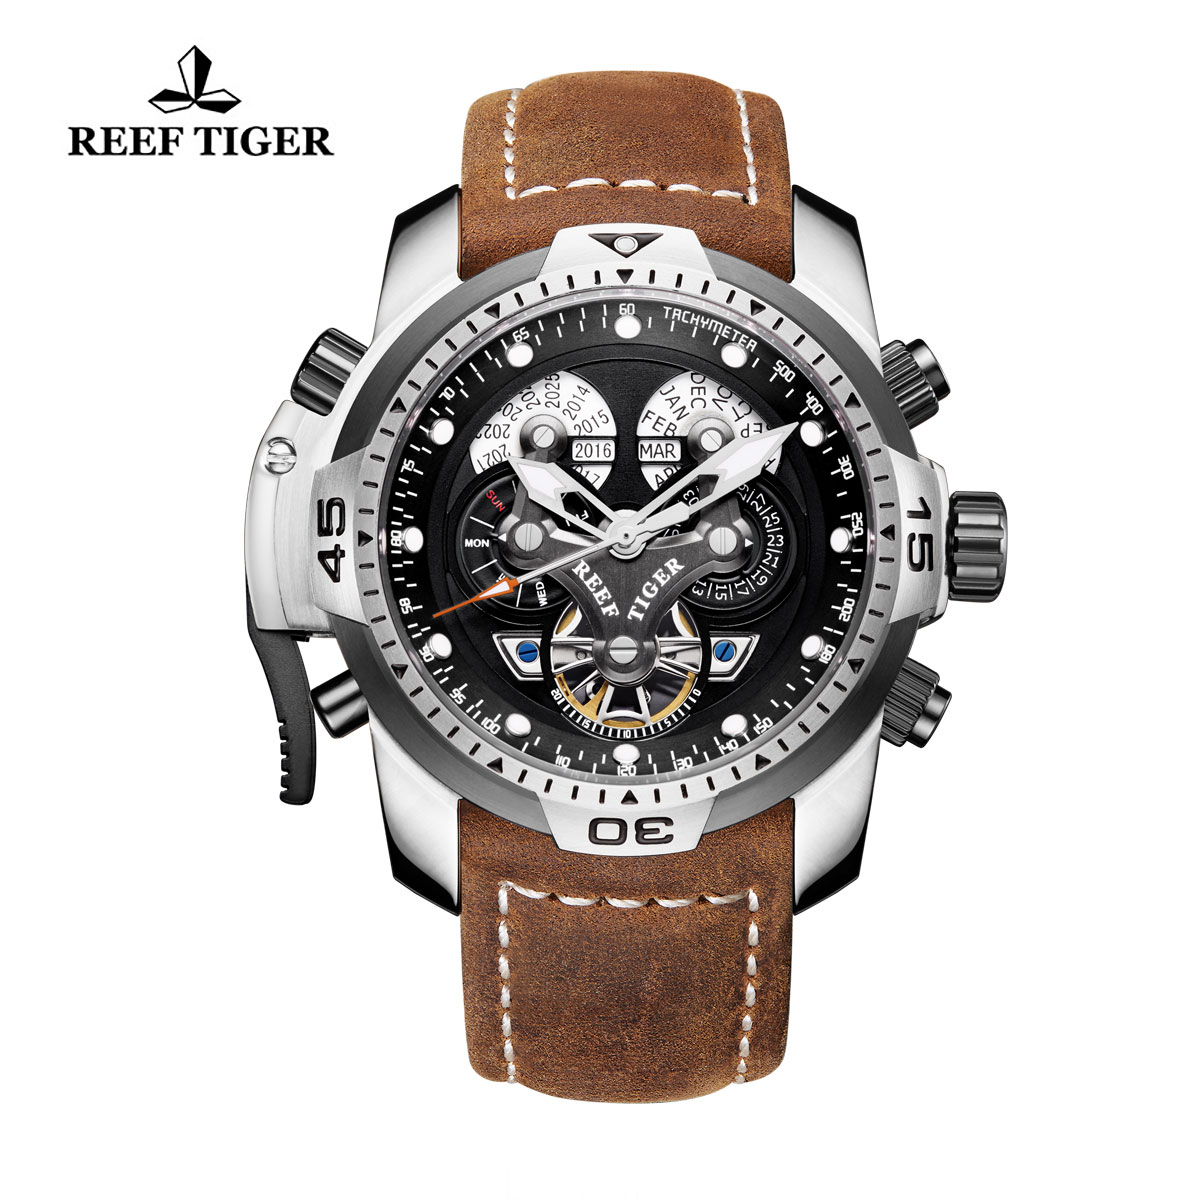 Reef Tiger Concept Sport Watches Automatic Watch Steel Case Brown Leather RGA3503-YBSB